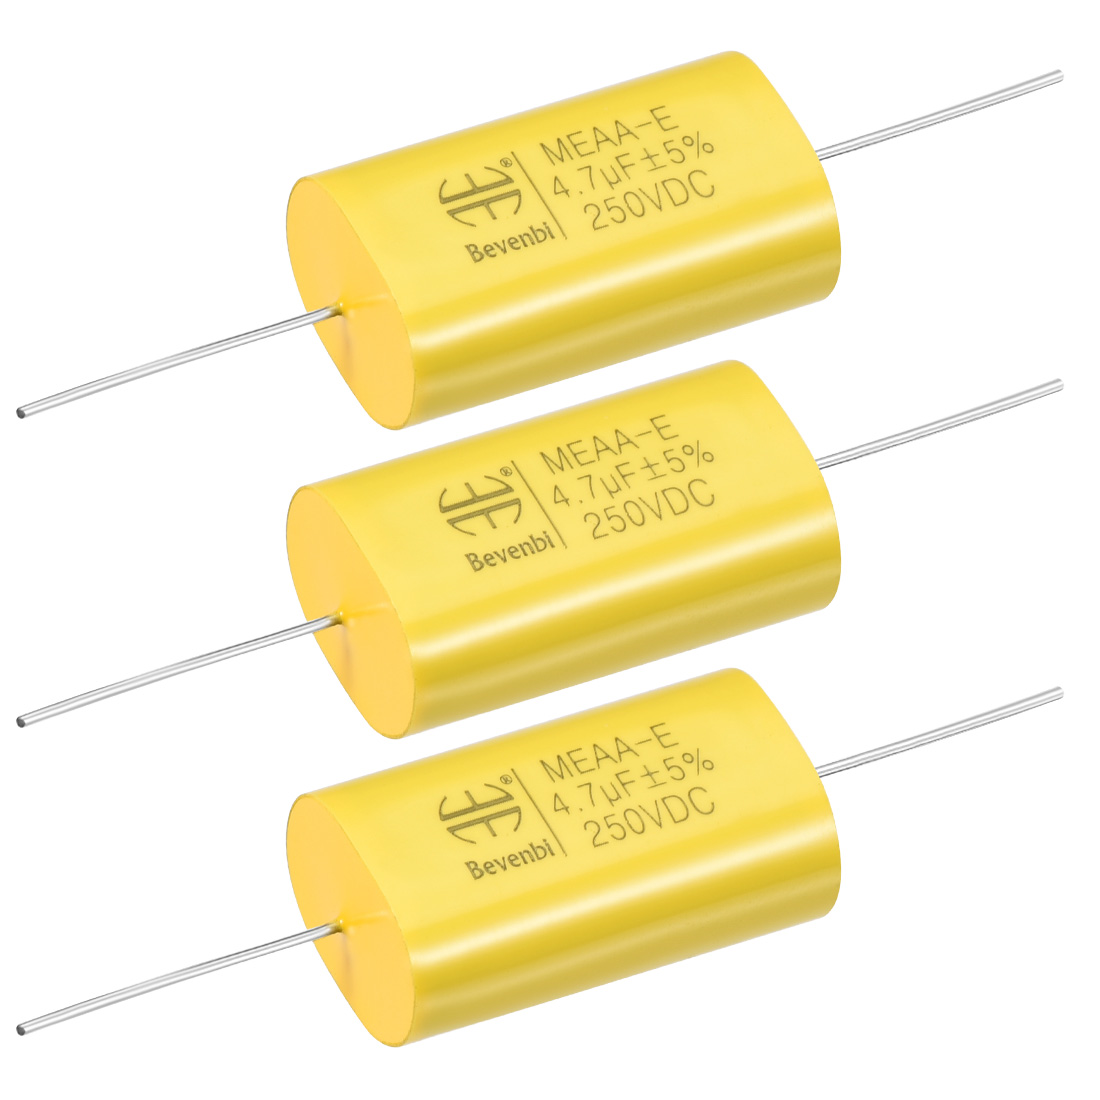 Film Capacitor 250V DC 4.7uF MKAA-E Flat Polypropylene Capacitors Yellow 3pcs